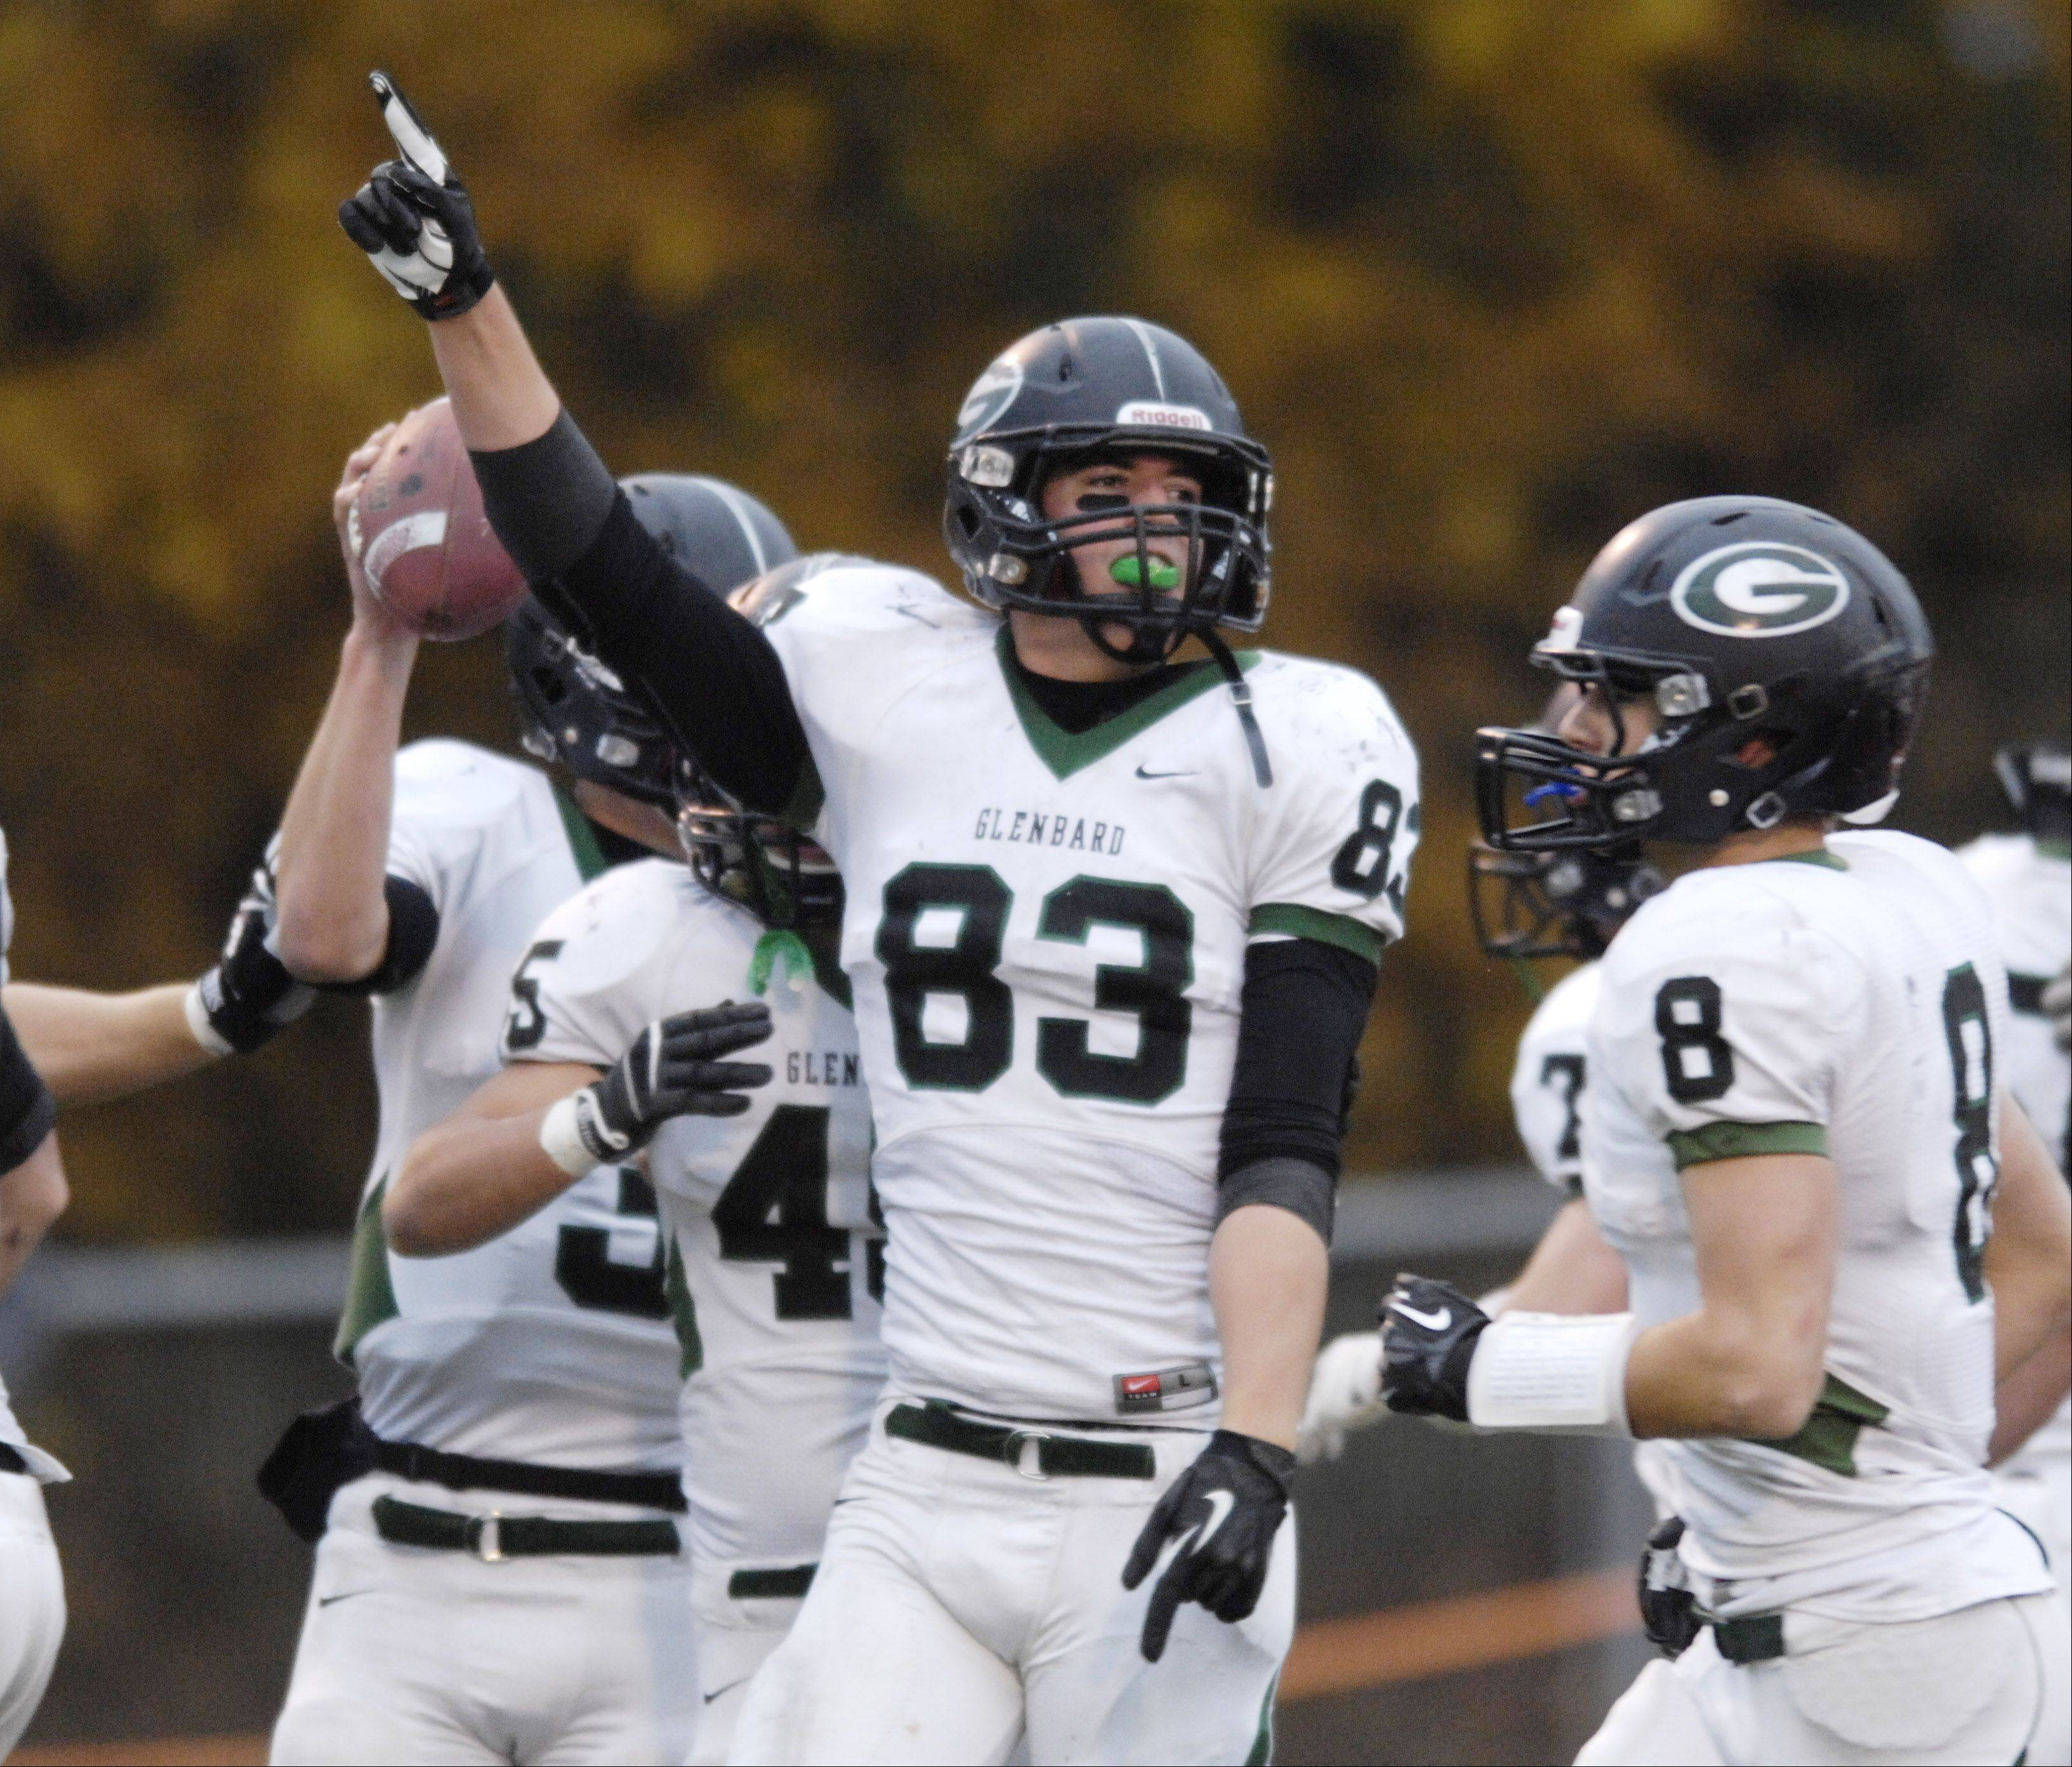 Images: Glenbard West vs. Libertyville football